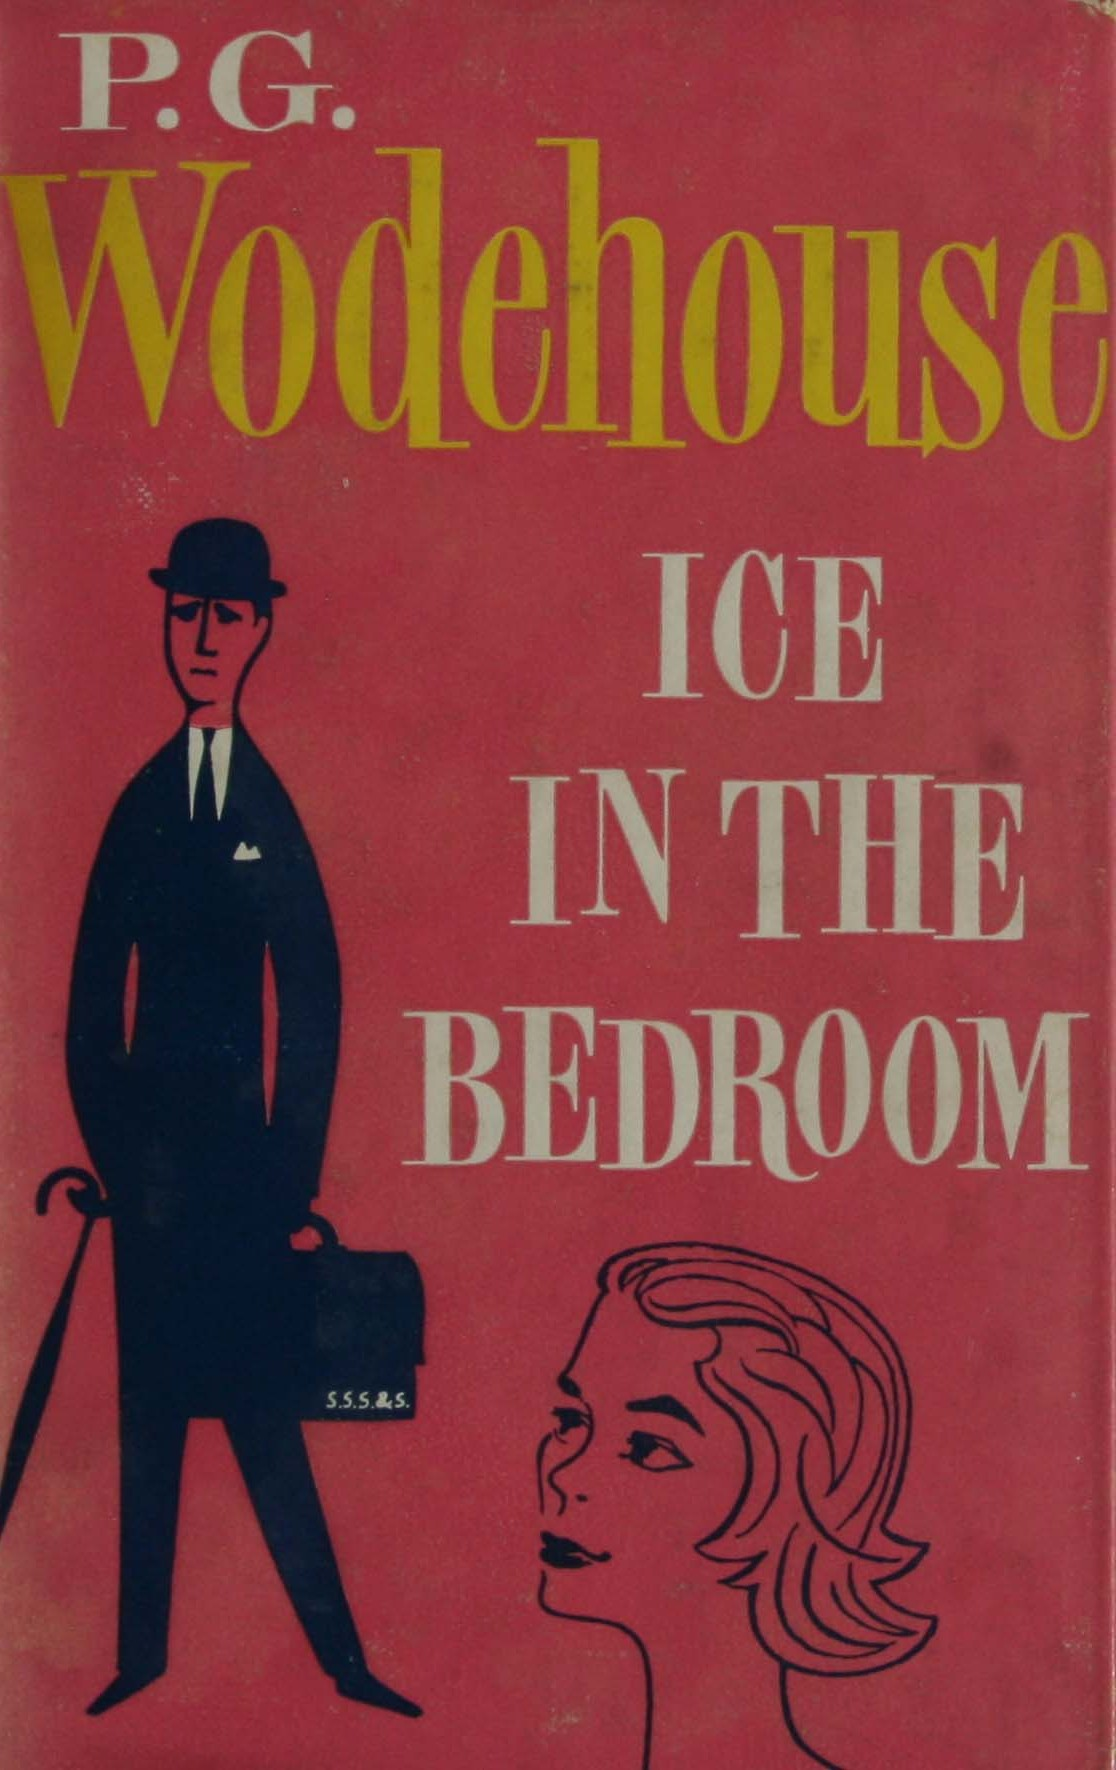 P G Wodehouse Ice in the bedroom